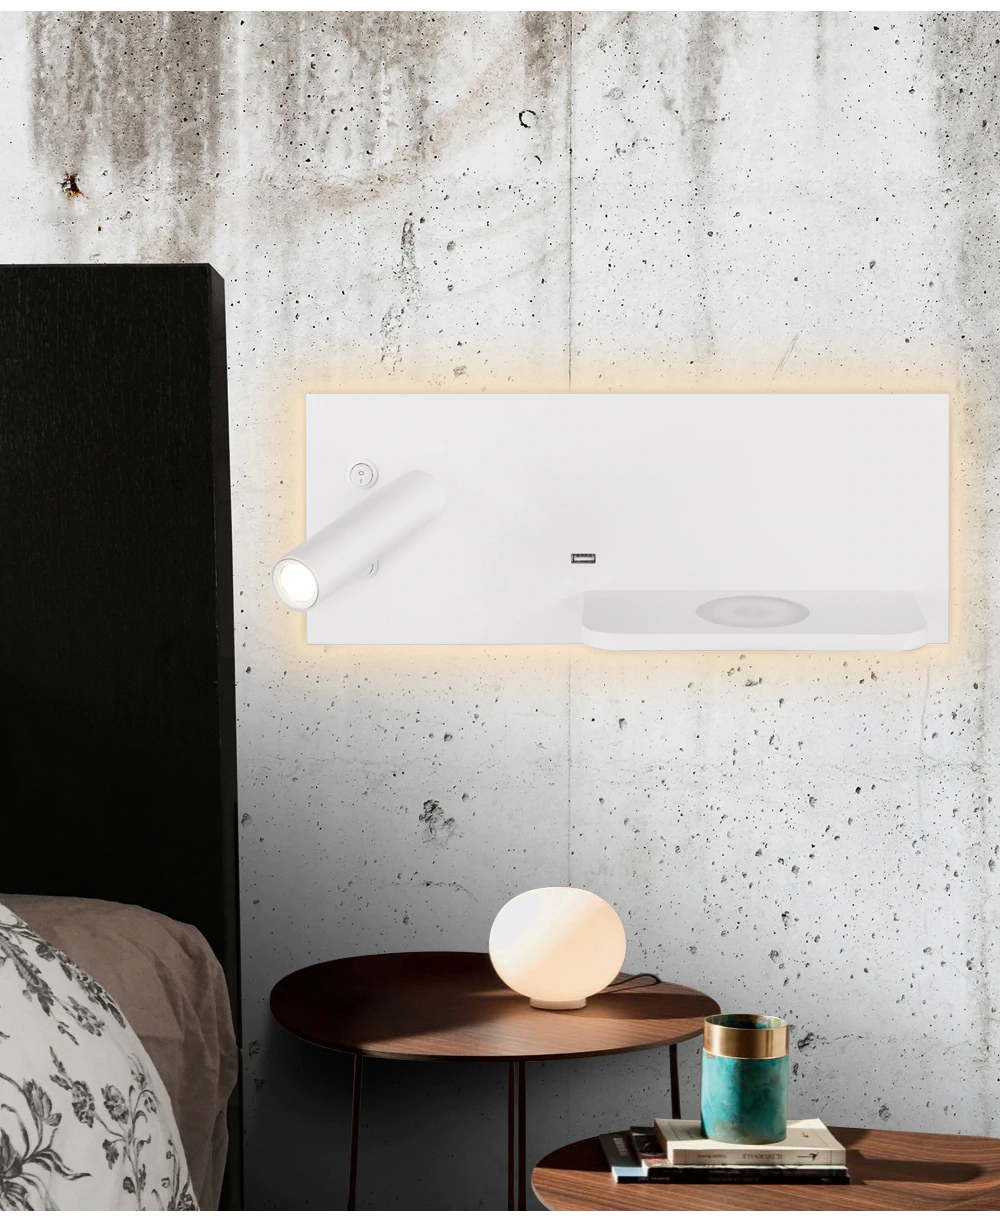 Bedroom Phone Wireless Charger Shelf Wall Lights Garner Nordic In 2020 Wall Shelves Wall Lights Hanging Light Fixtures #wireless #living #room #lights